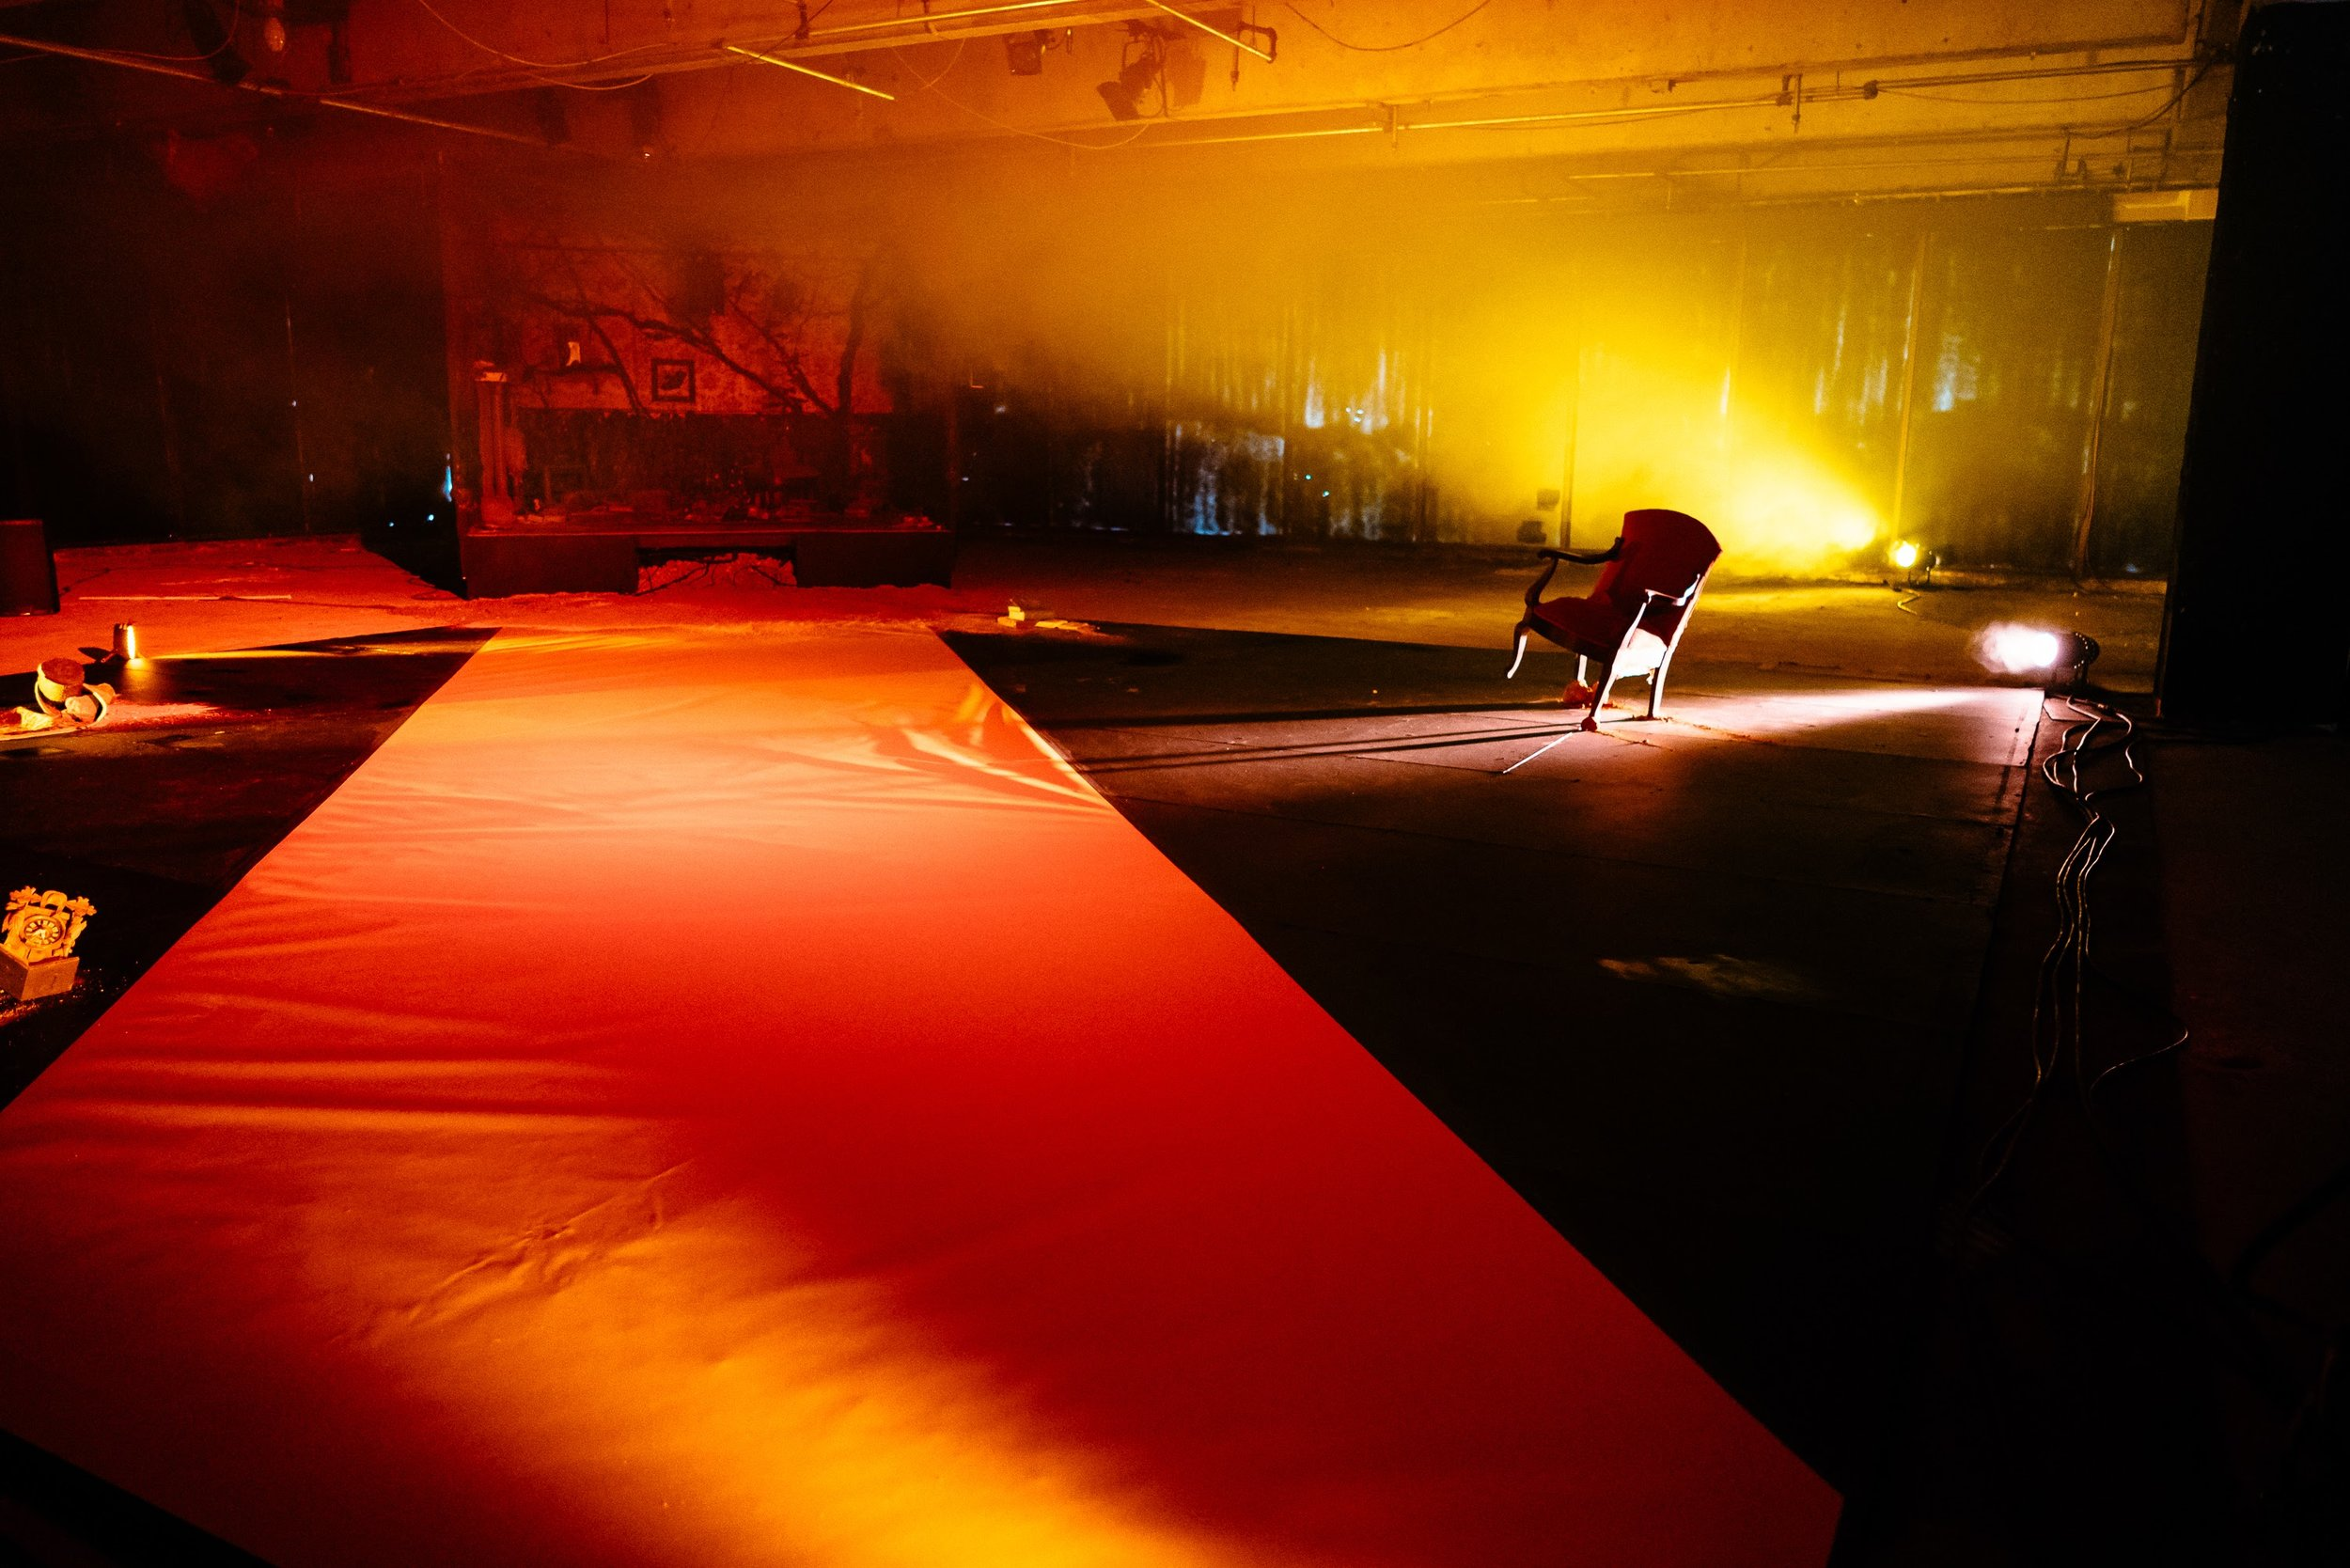 Extended Decay - Paper, light and sound installation in collaboration with Dorothy O'Connor in vacant structure.